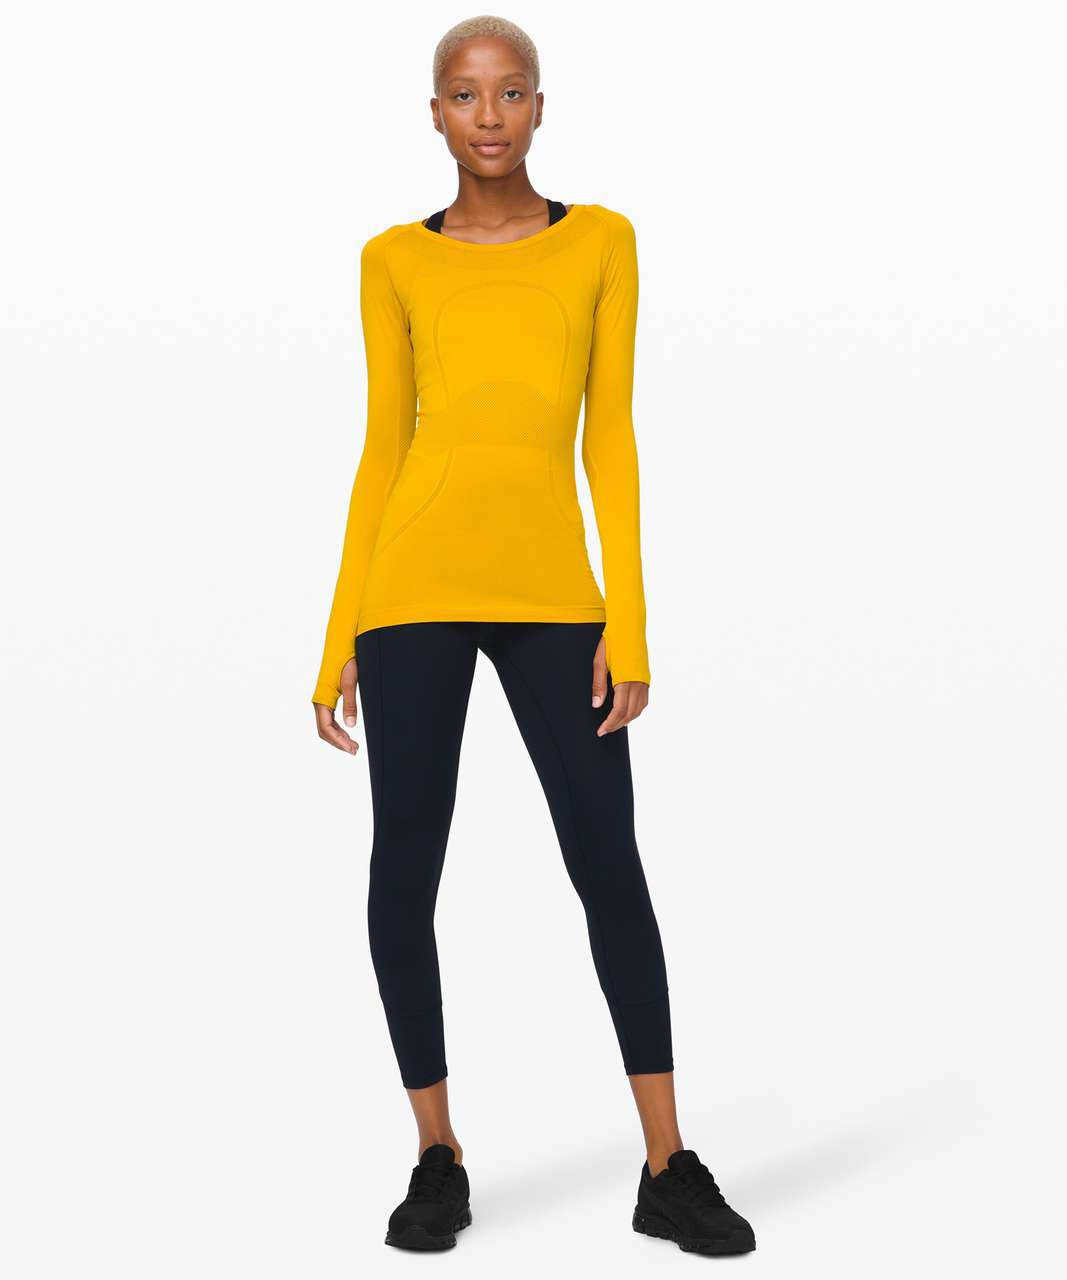 Lululemon Swiftly Tech Long Sleeve Crew - Honeycomb / Honeycomb